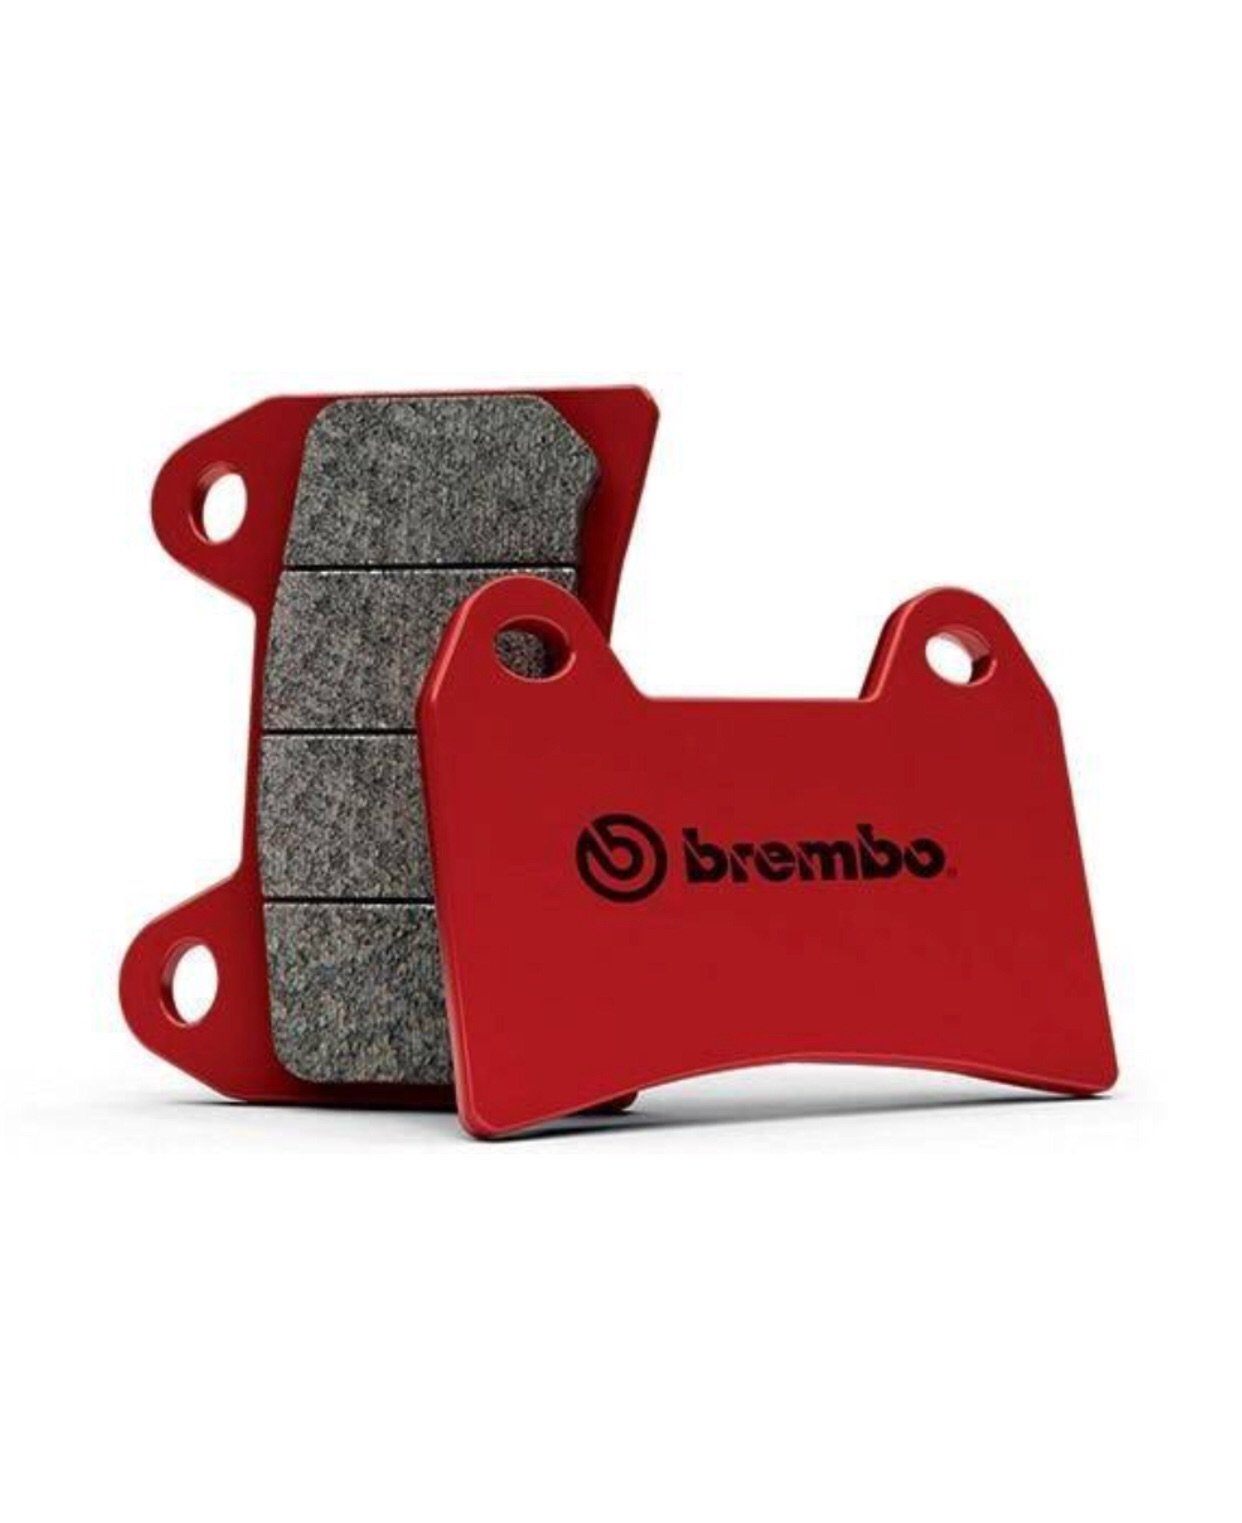 Brake Pads - MV Agusta, Brake Pads, Brembo - Race and Trackday Parts